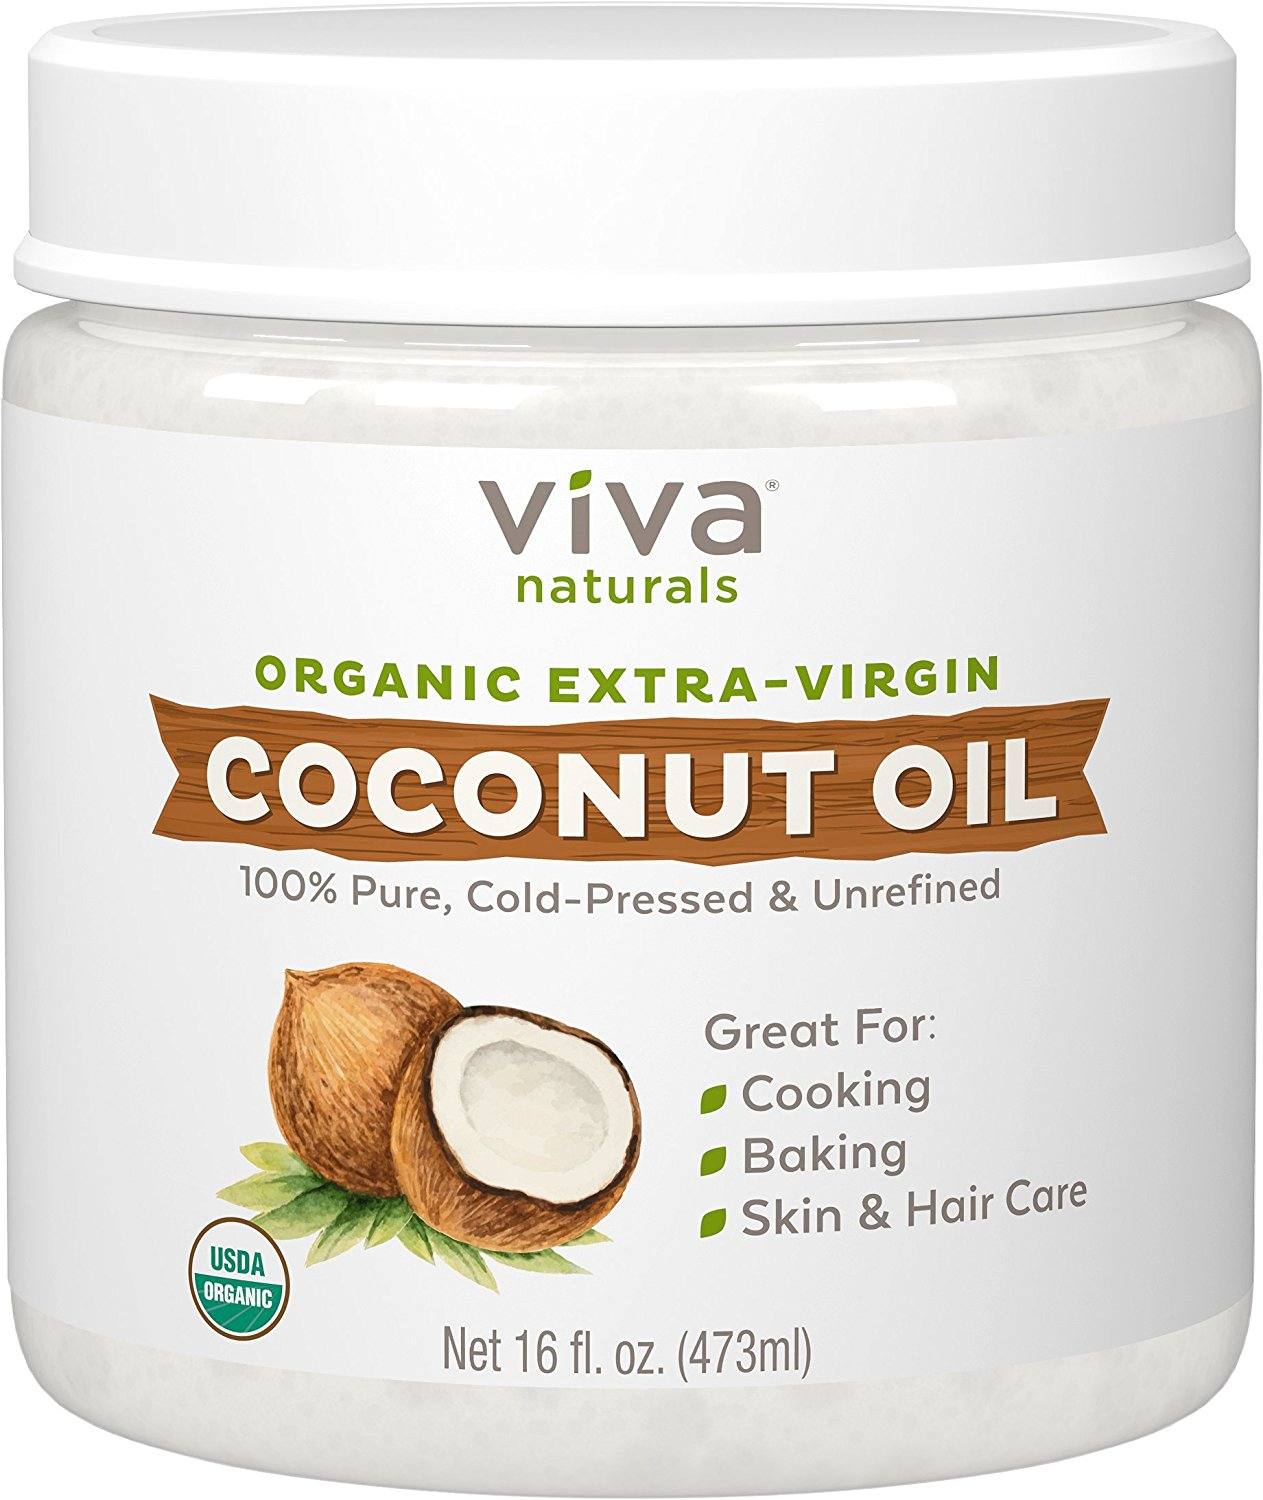 Viva Naturals The Finest Organic Extra Virgin Coconut Oil